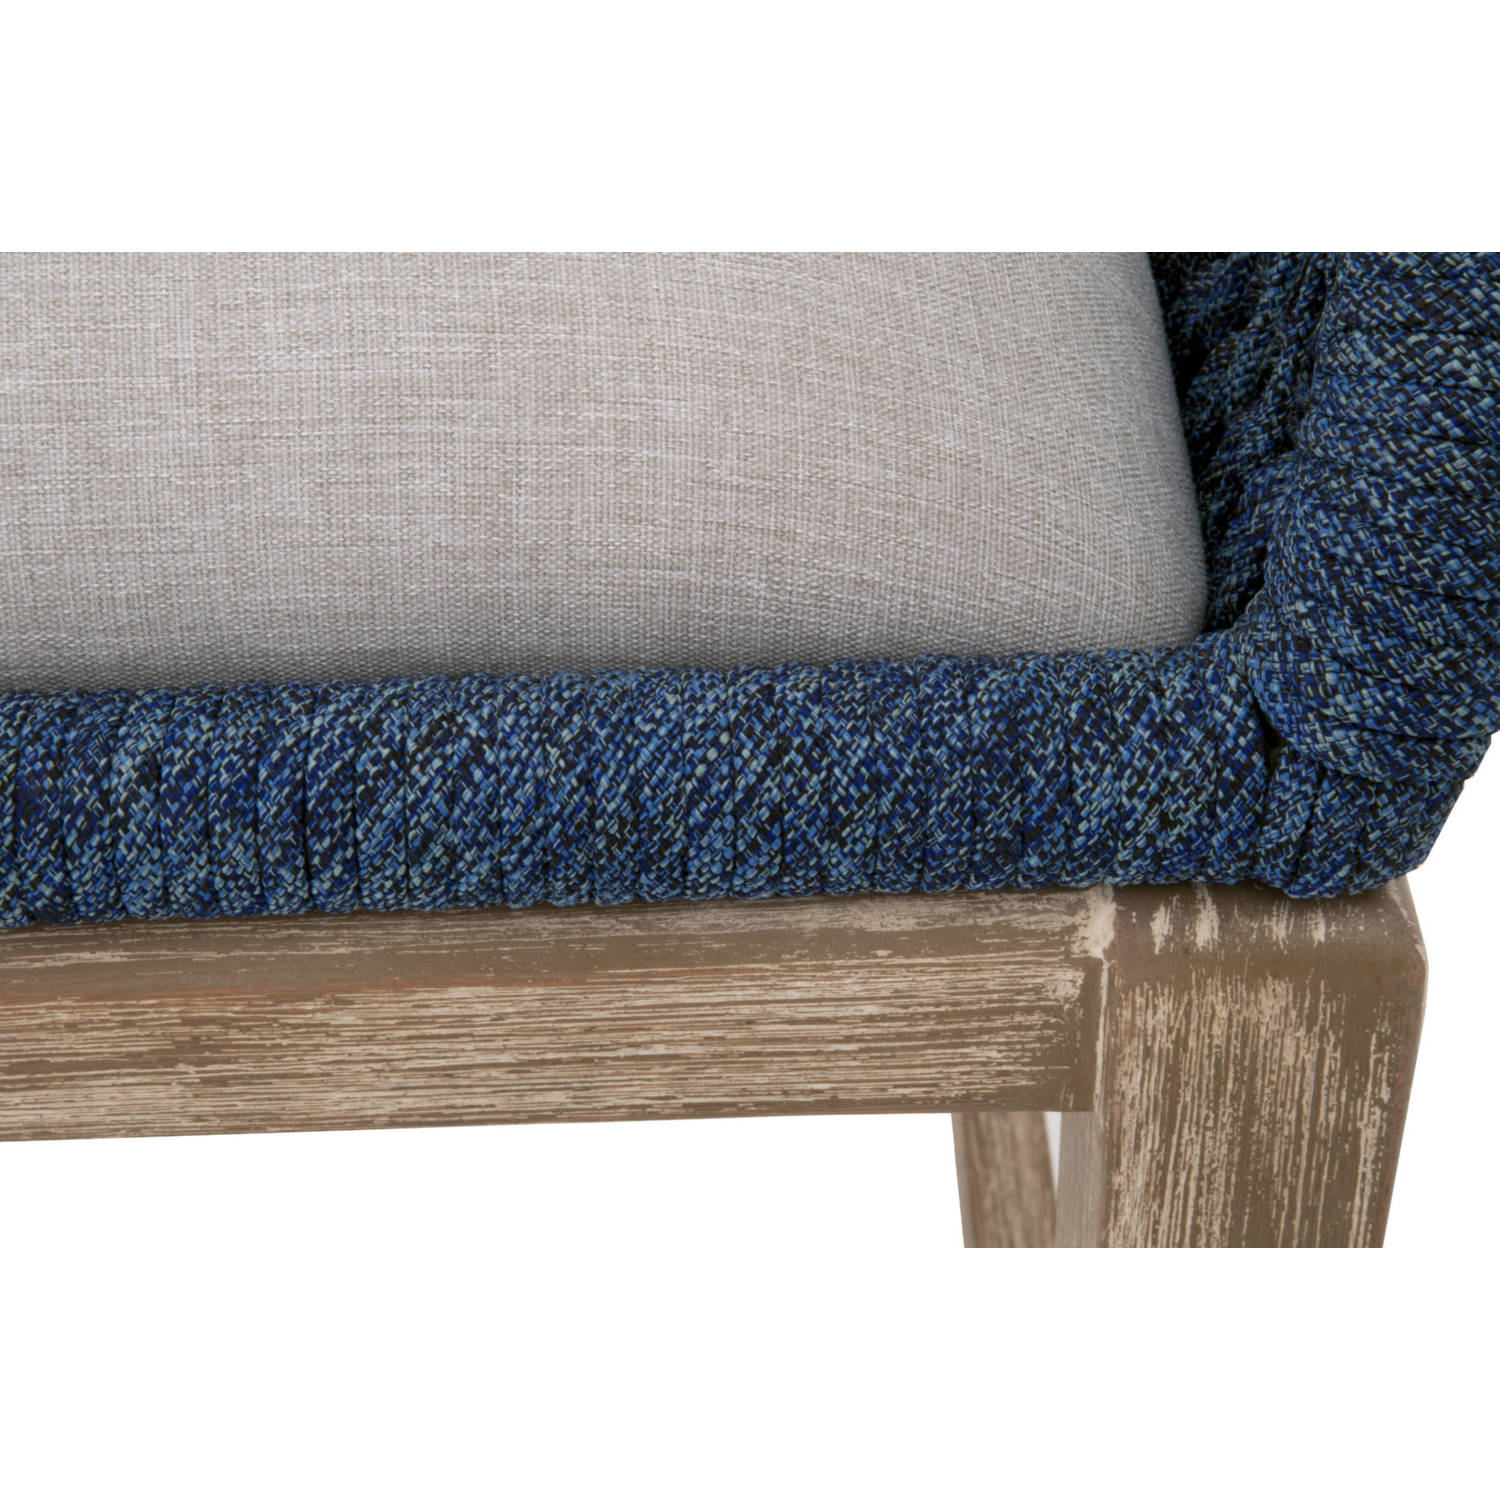 Awesome Loom Counter Stool In Indigo Blue Rope Wood Fabric By Orient Express Furniture Ibusinesslaw Wood Chair Design Ideas Ibusinesslaworg